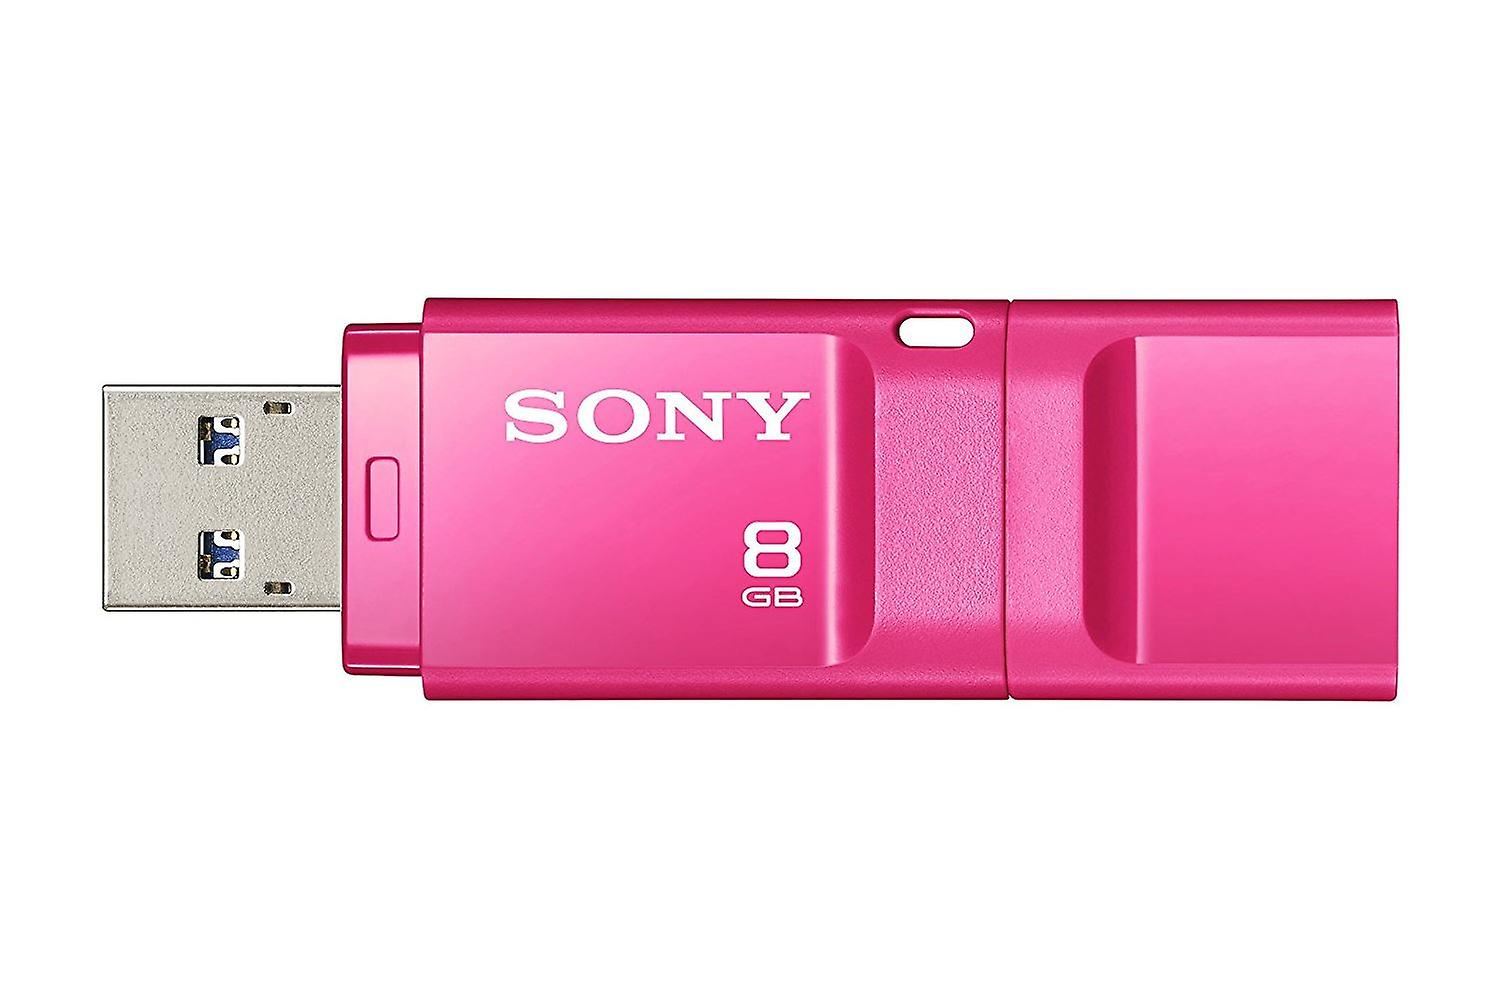 Launching Hirens BootCD from USB Flash Drive